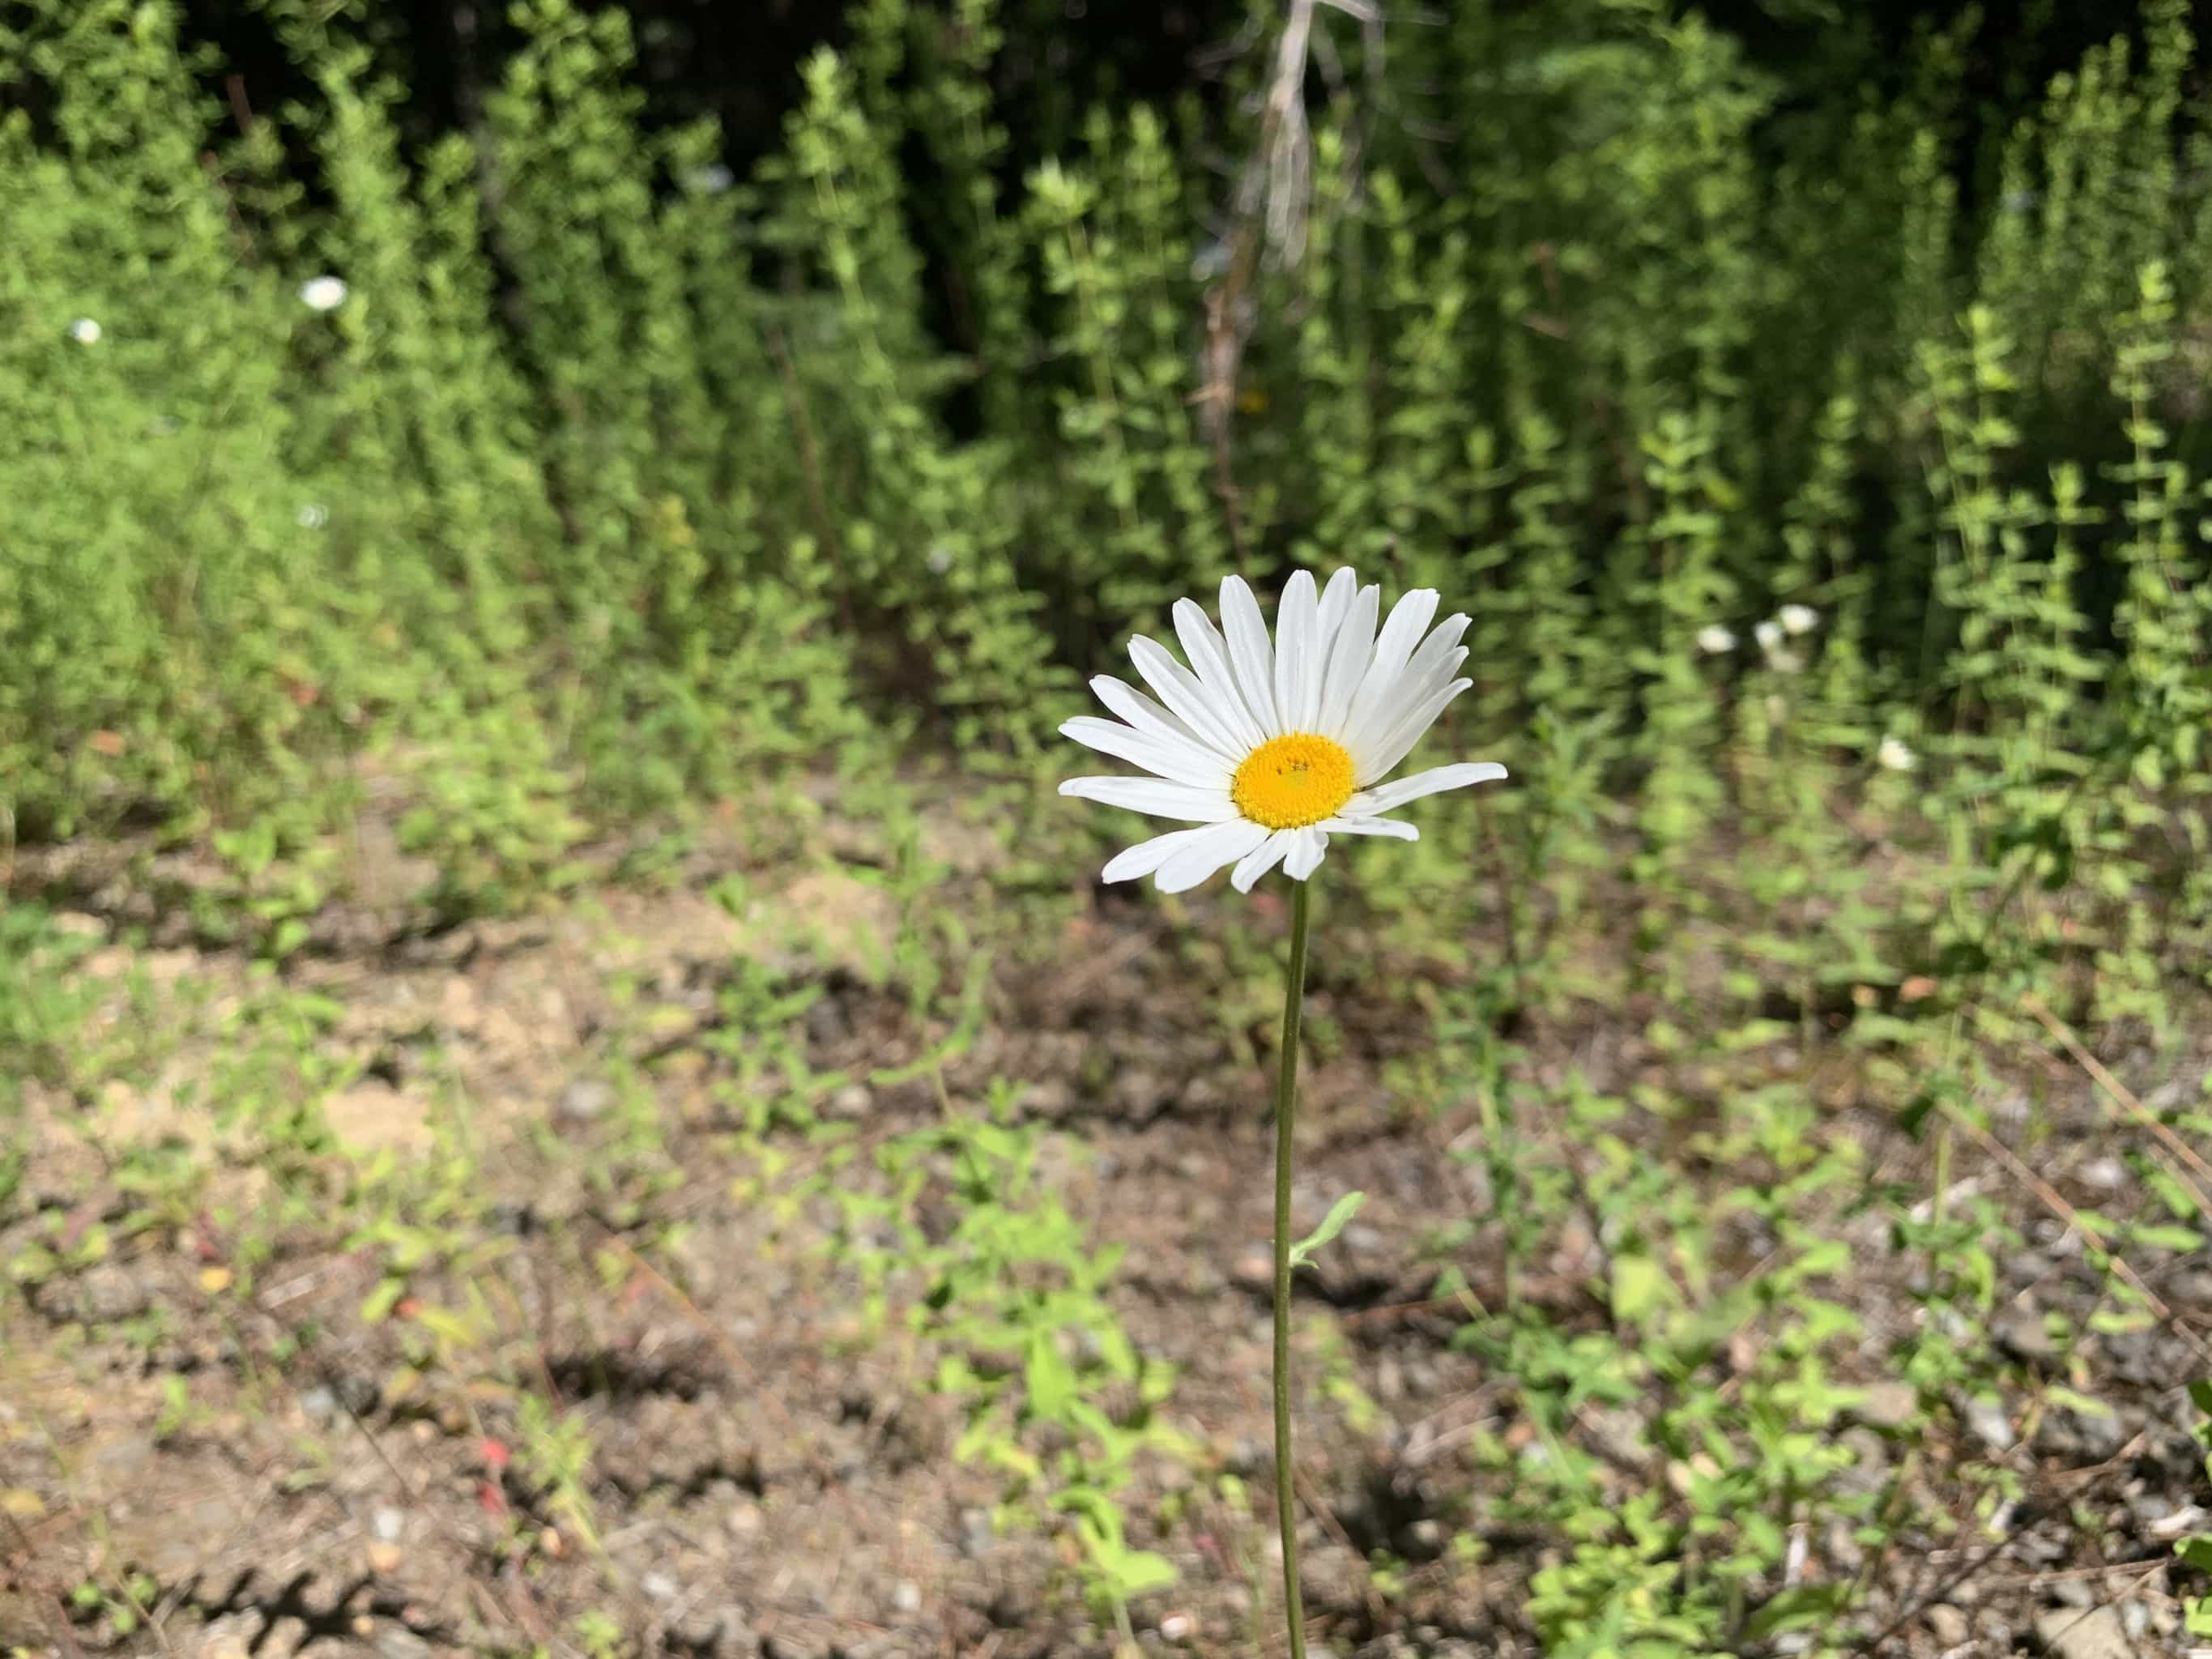 White daisy in bloom in the Gifford Pinchot National forest near Carson, WA.